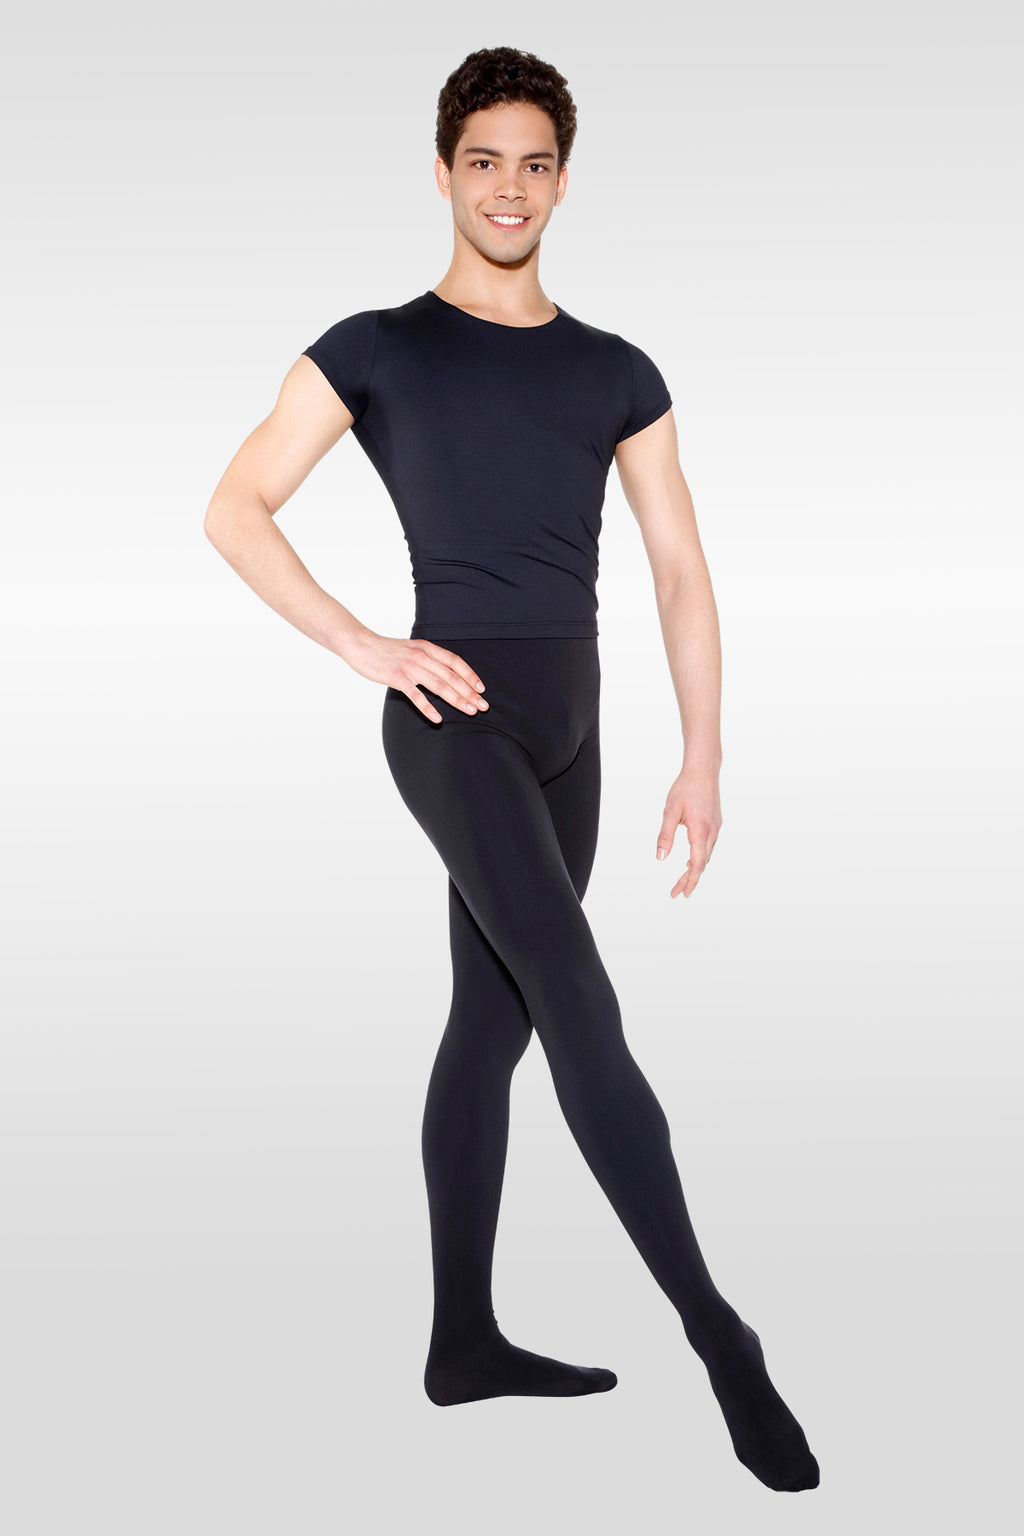 8b97db412e6f5 Men's Dancewear - Dance Belts - Men's Tights & Leotards – Studio ...